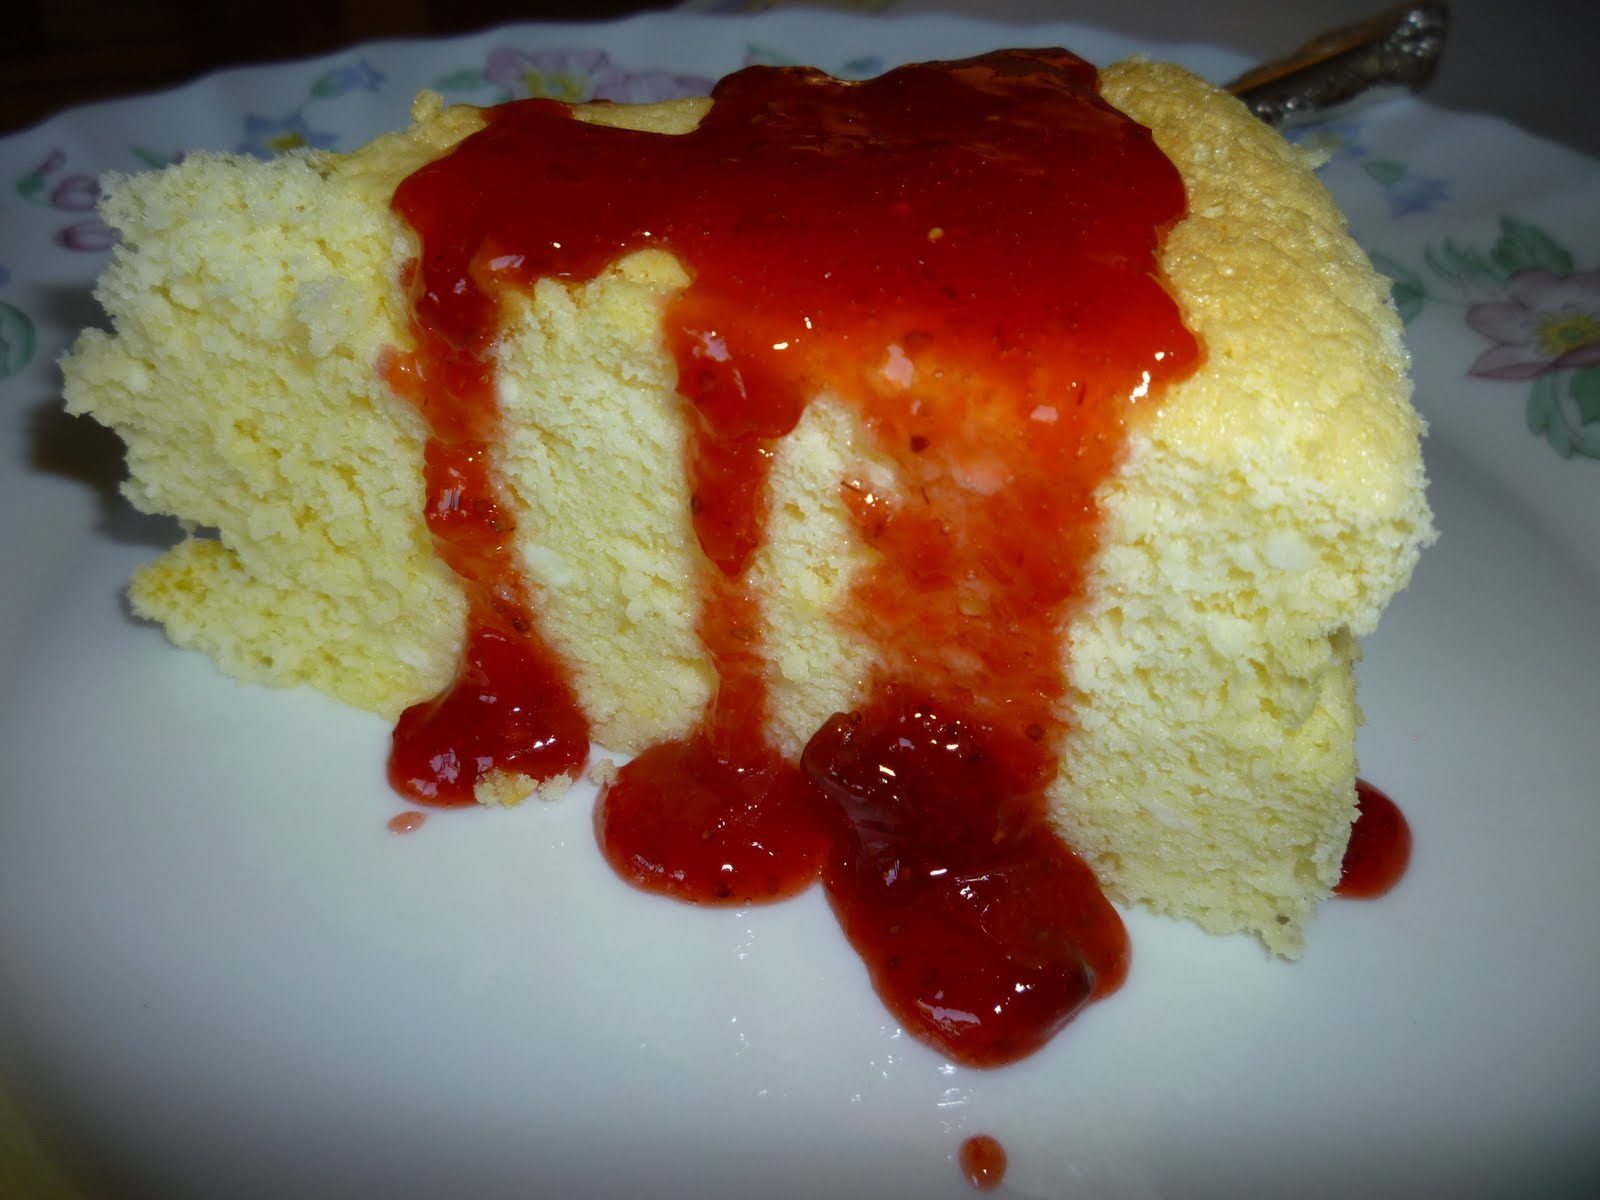 Japanese Cream Cheese Chiffon Cake